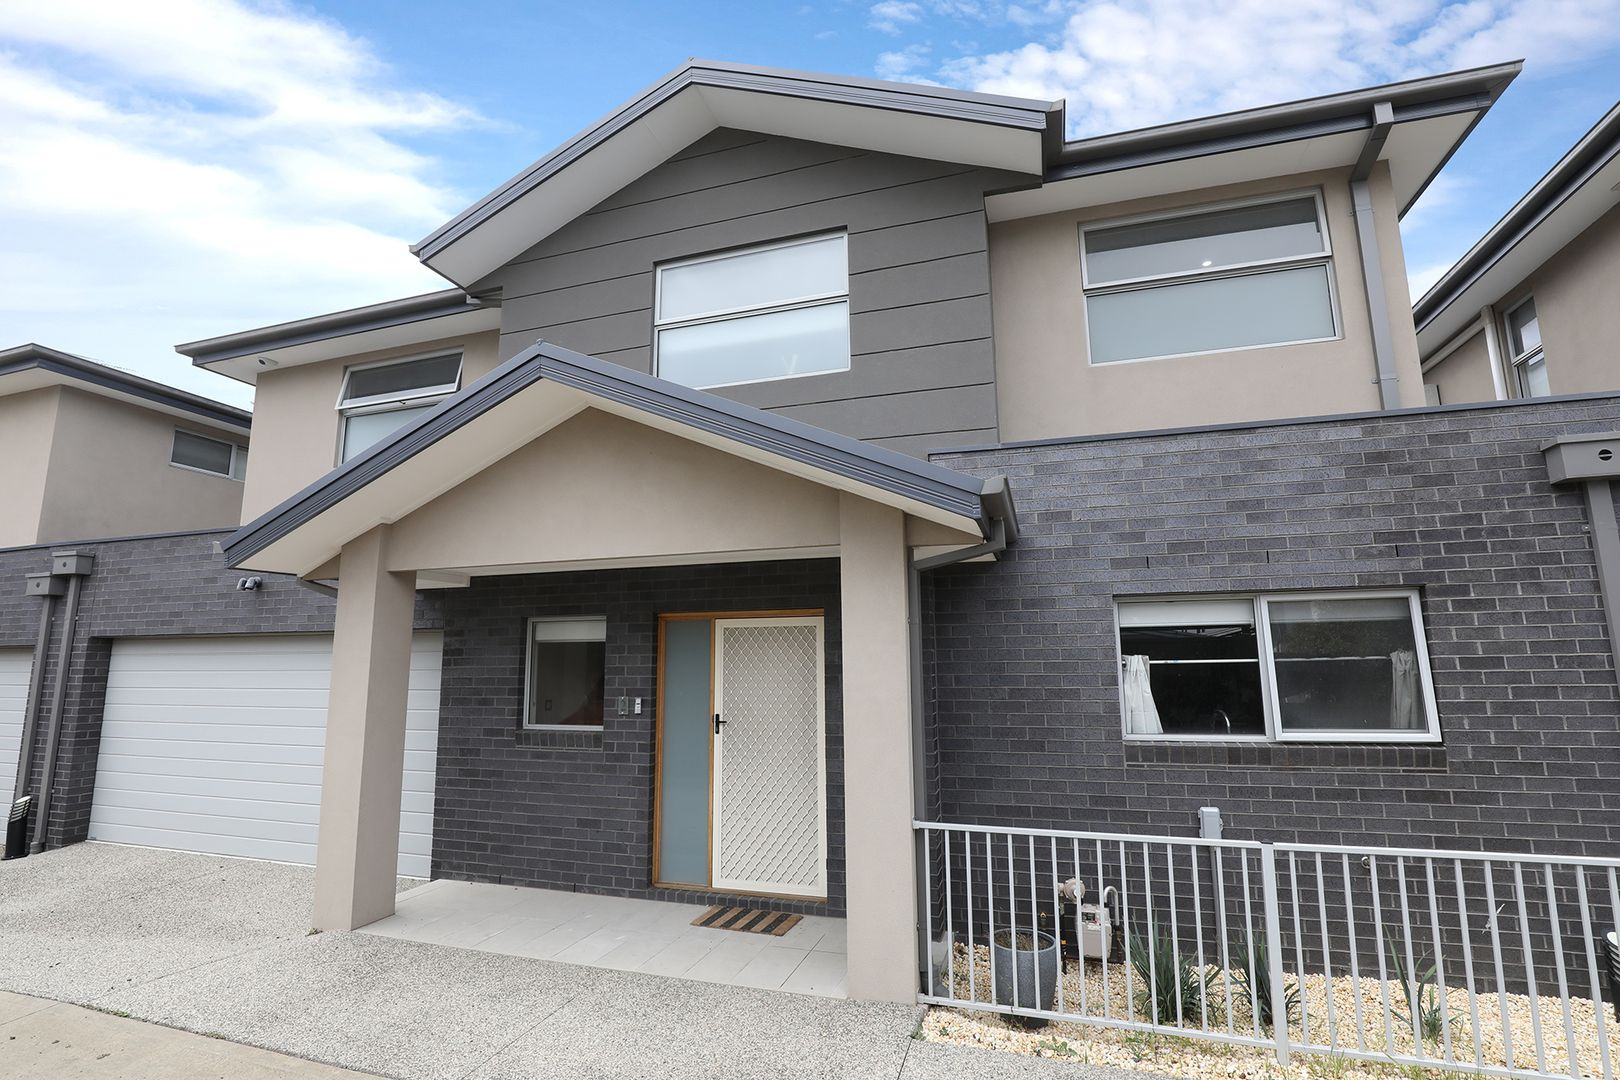 2/29 Westgate Street, Pascoe Vale South VIC 3044, Image 0